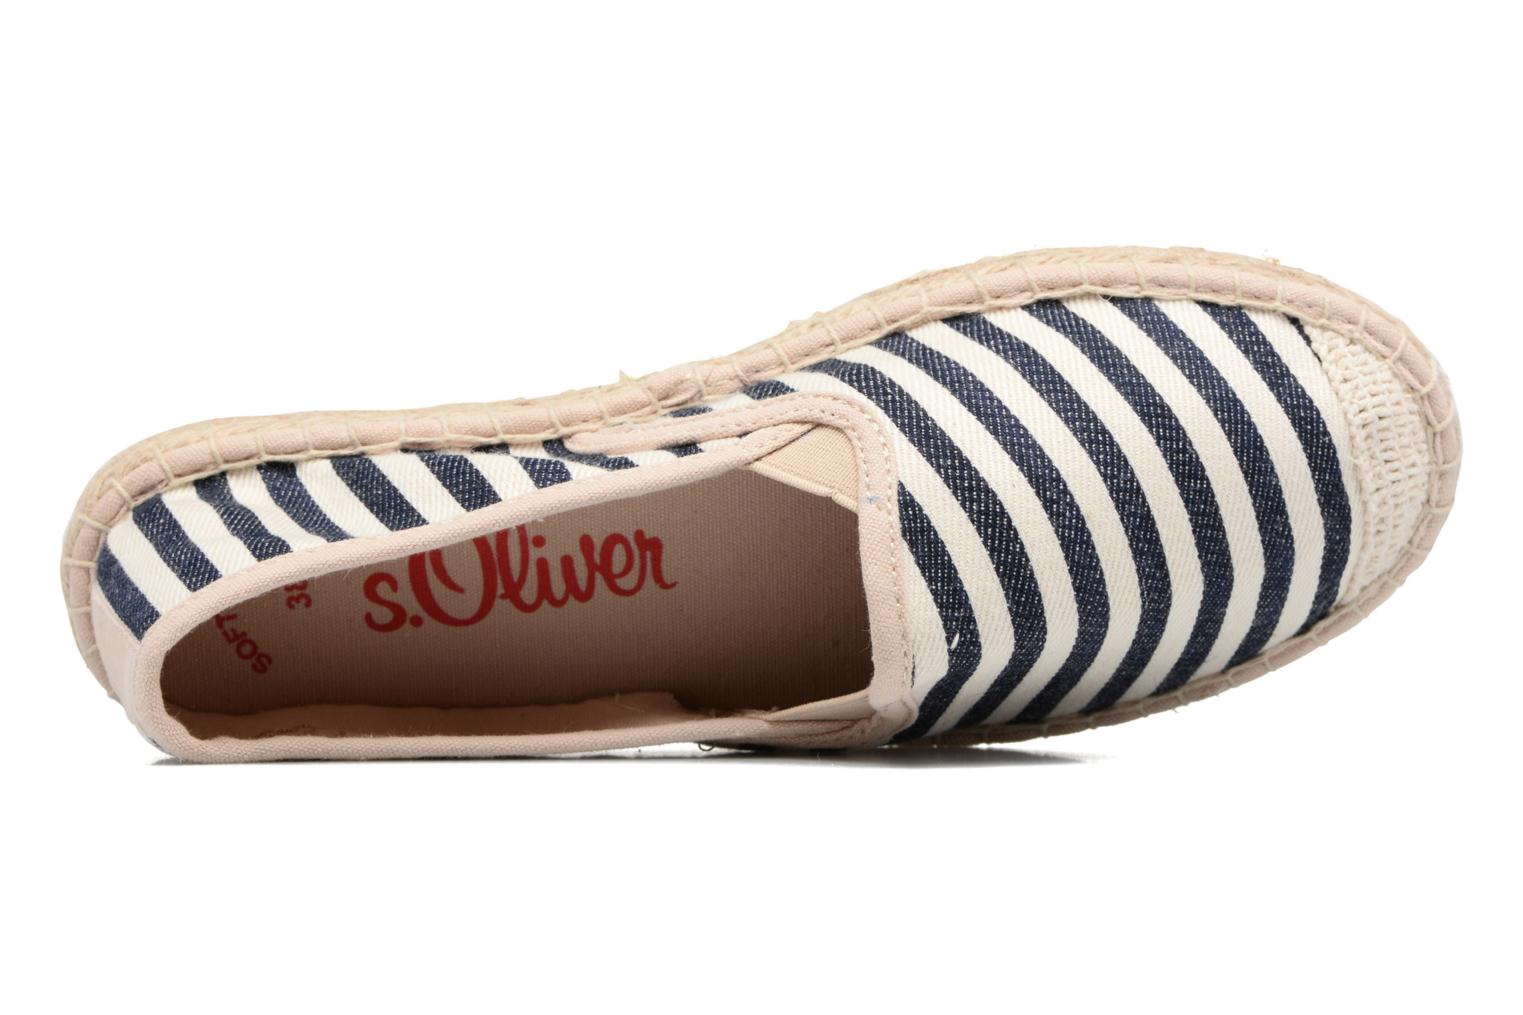 Espadrilles S.Oliver Sapotille Multicolor view from the left